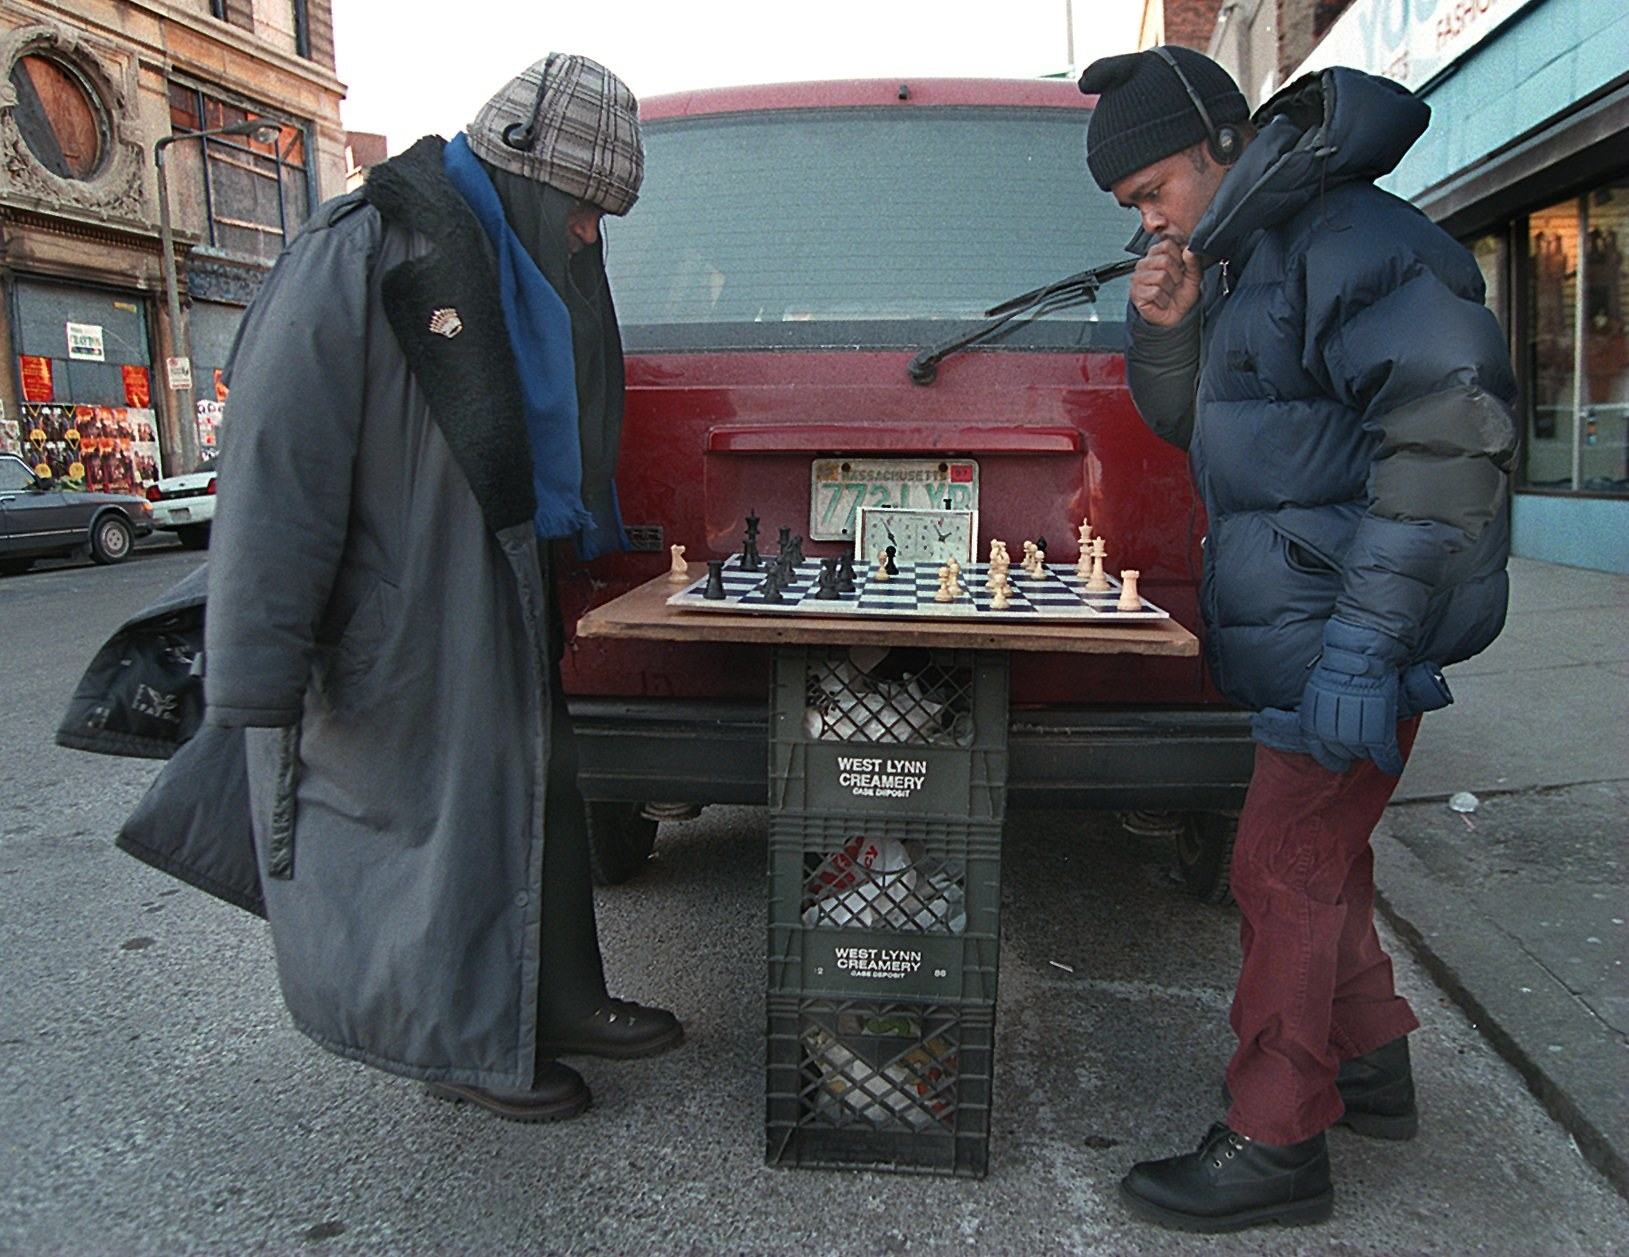 Two Black men in overcoats and hats play chess on three stacked-up milk crates behind a maroon minivan